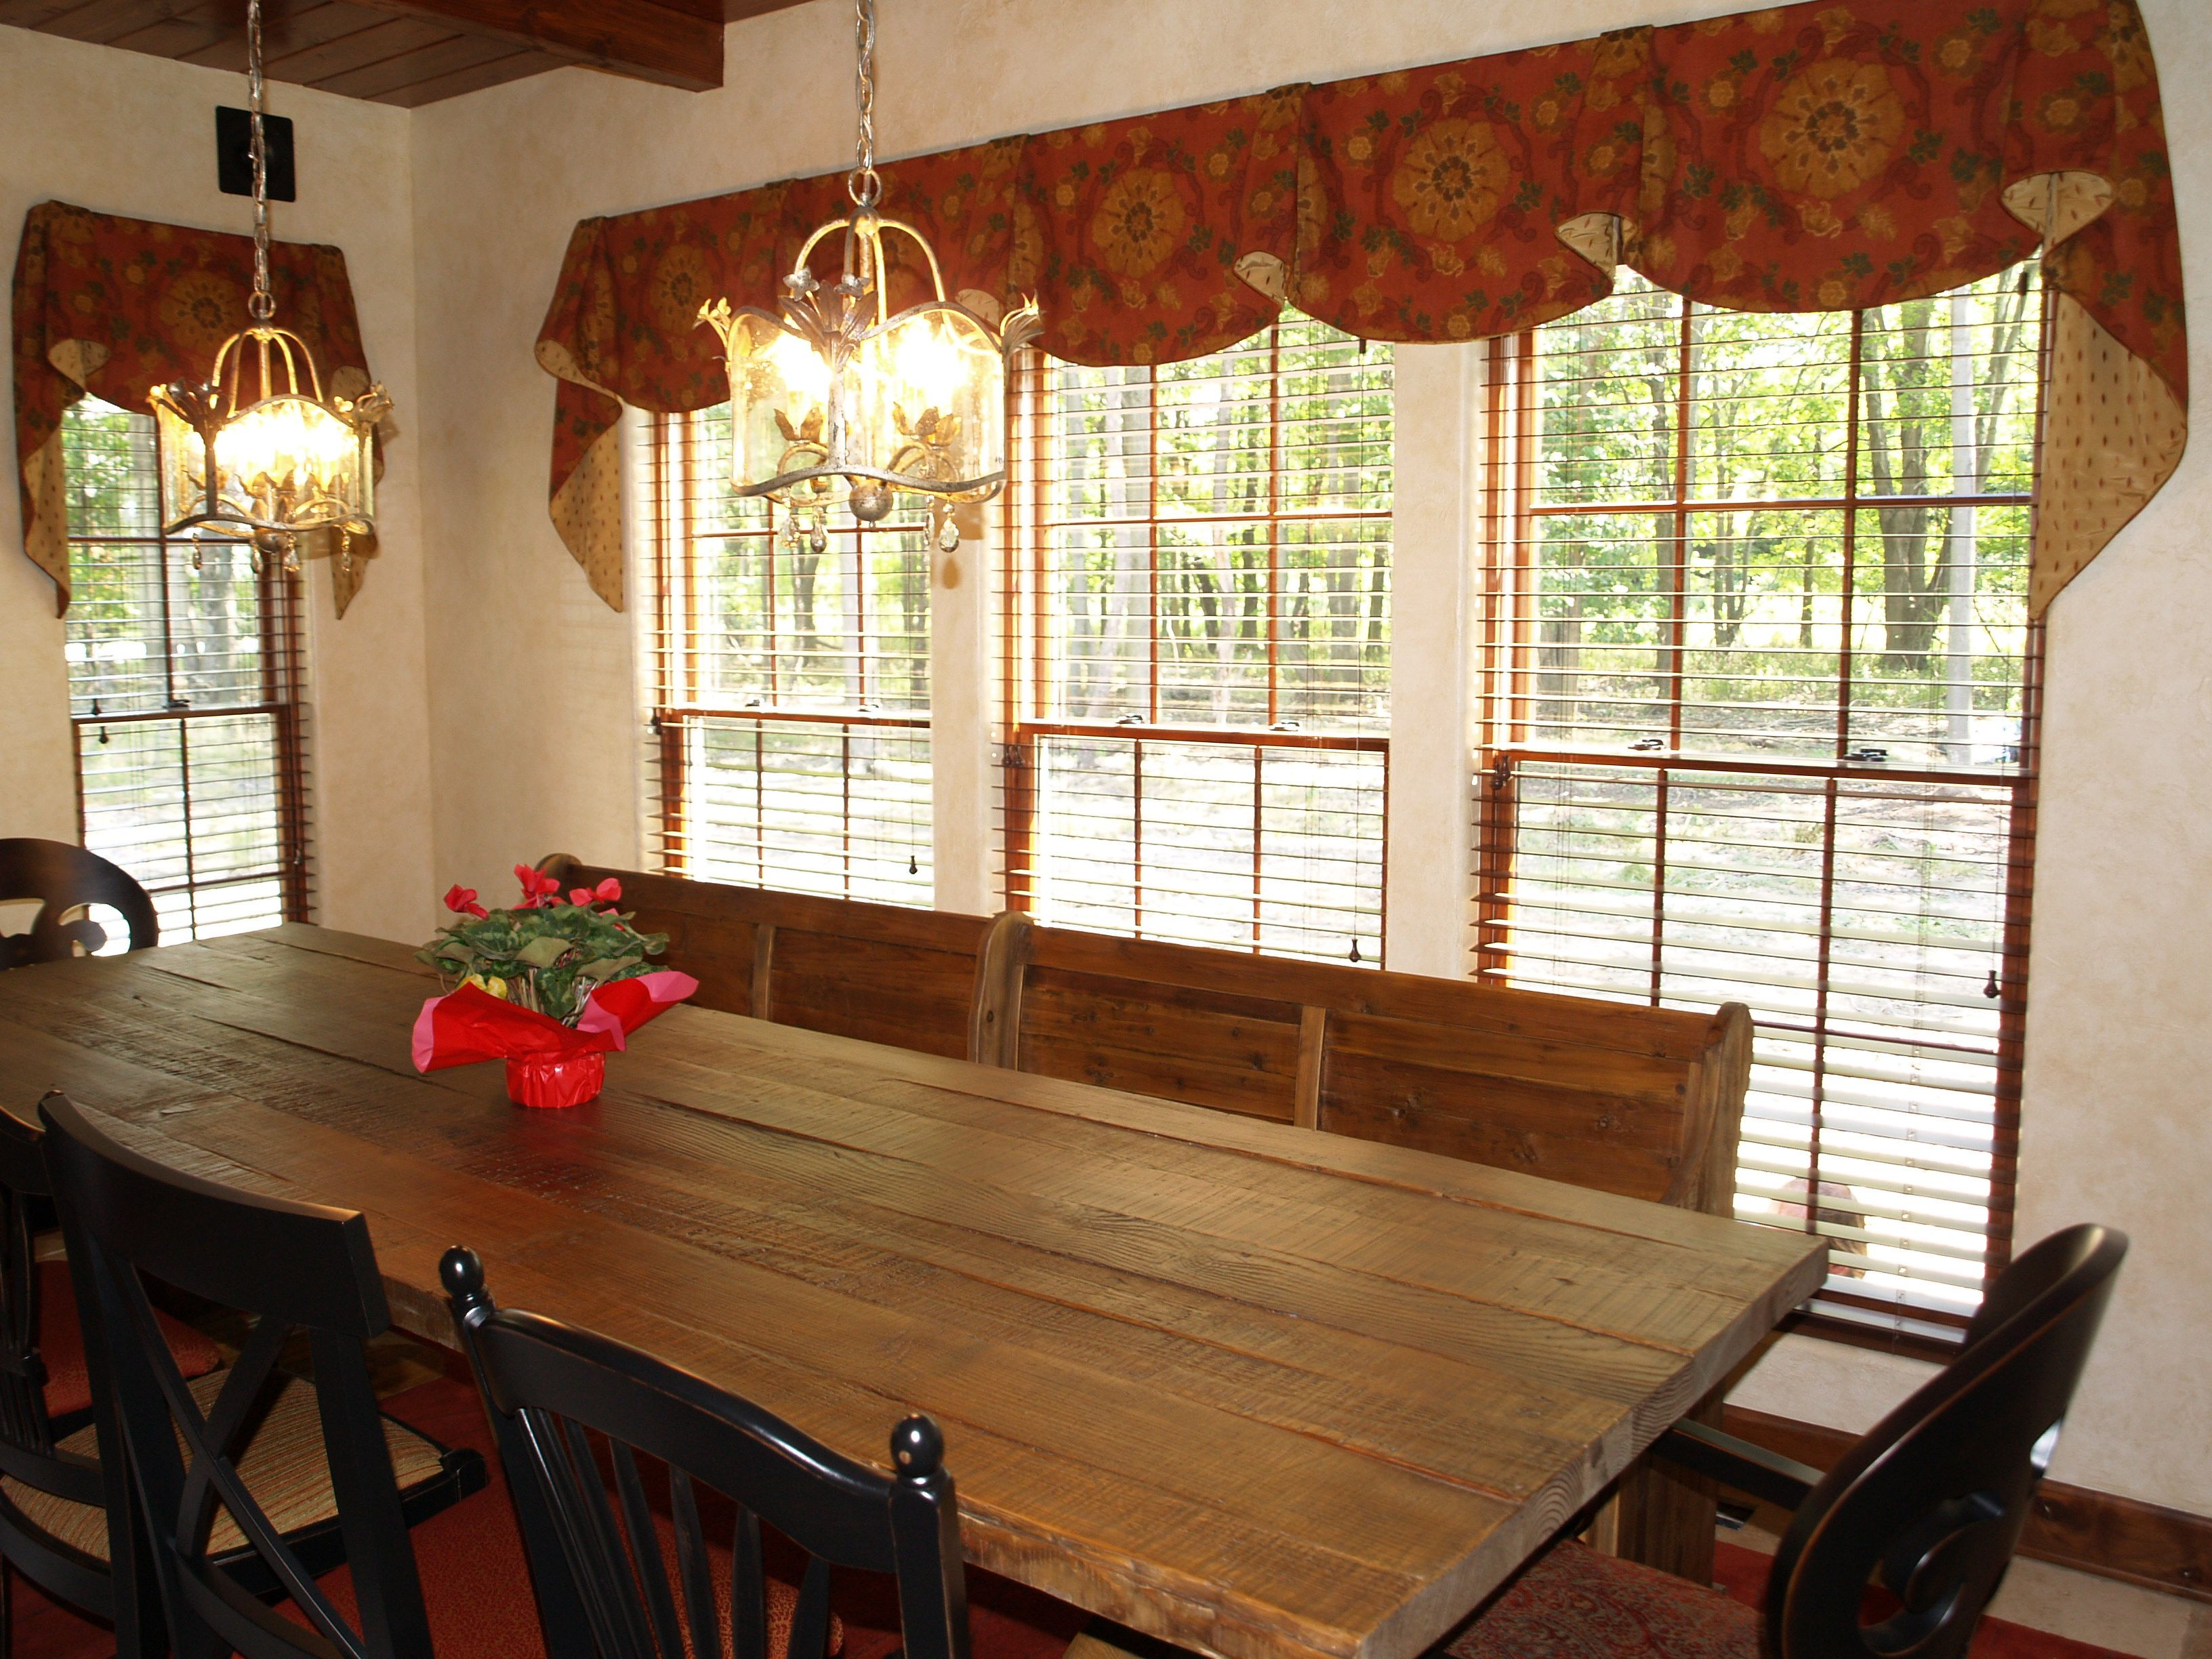 Imperial Valances With Extra Long Cascades In This Kitchen Courtesy Of Well Dressed Windows Solon